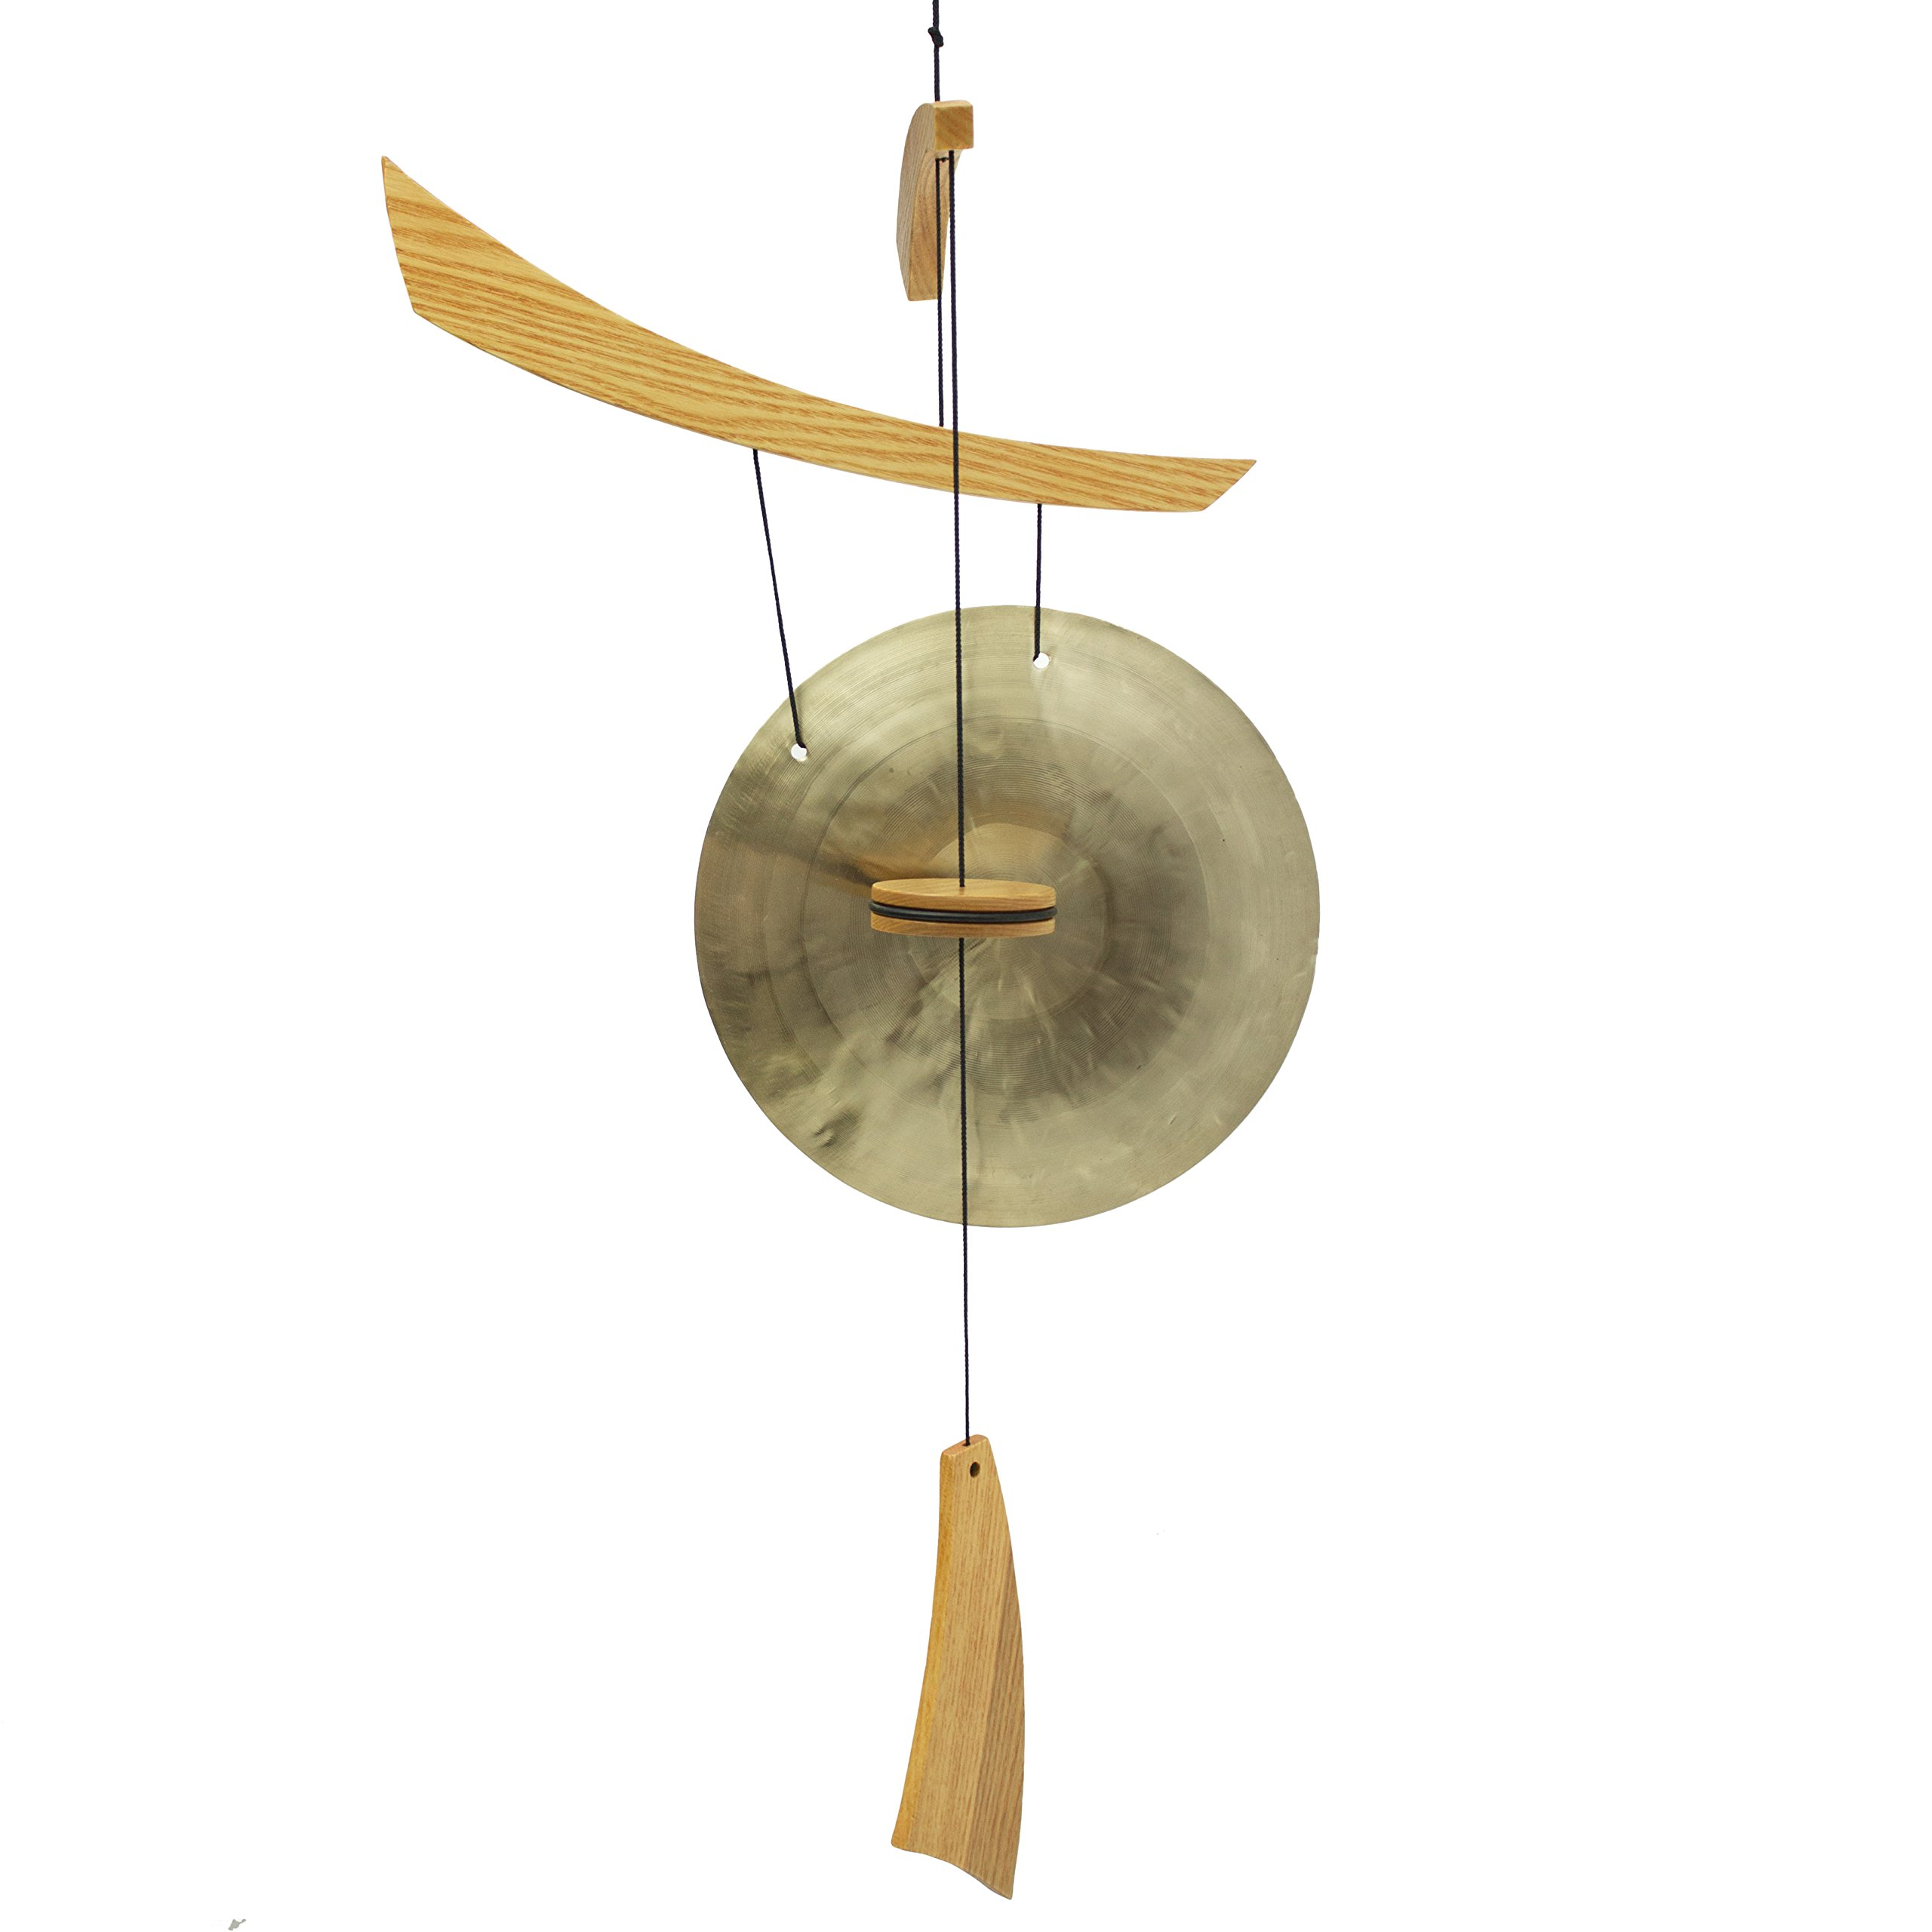 Woodstock Chimes EGC The Original Guaranteed Musically Tuned Chime Medium Emperor Gong, Natural by Woodstock Chimes